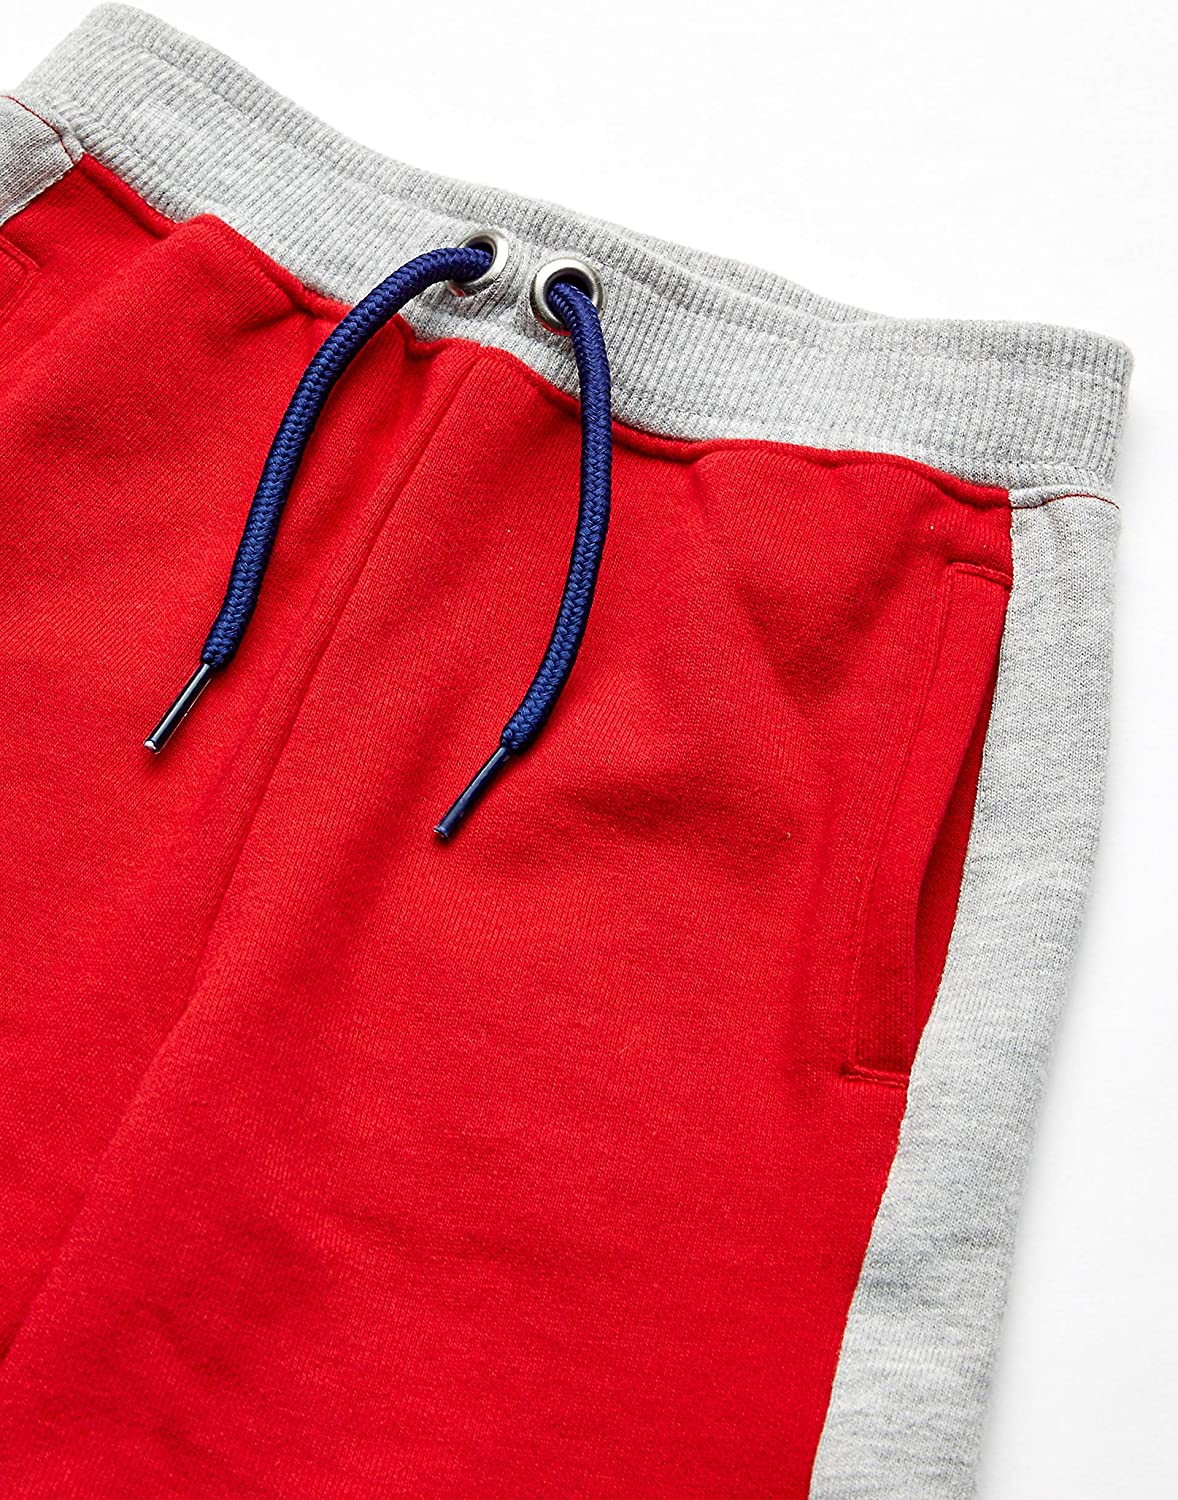 Brand Spotted Zebra Boys Colorblock French Terry Shorts